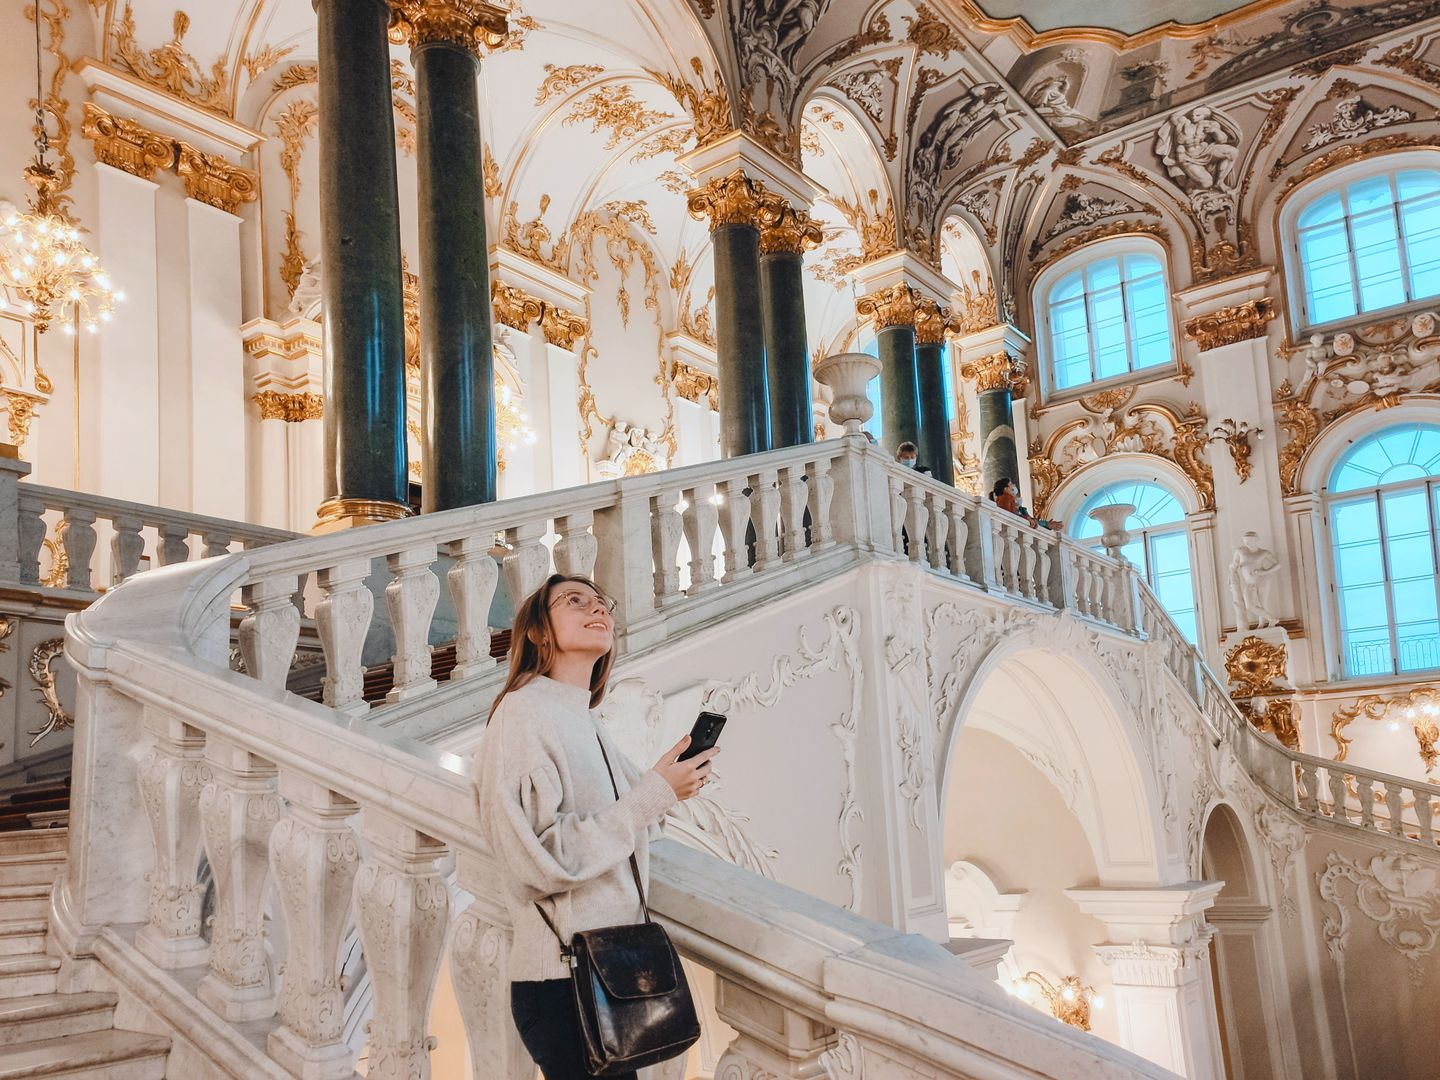 The Hermitage: Ticket & Audio tour of the state rooms and the main masterpieces